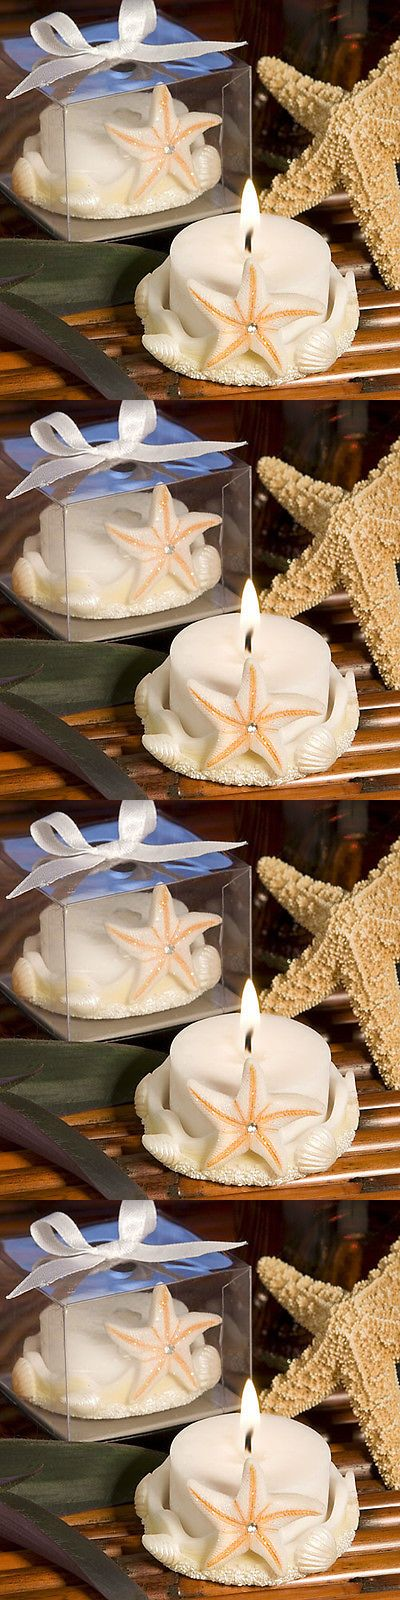 Favors and Party Bag Fillers 26385: 50 Starfish Design Candle Beach Theme Wedding Bridal Shower Bulk Favor Lot -> BUY IT NOW ONLY: $80.99 on eBay!